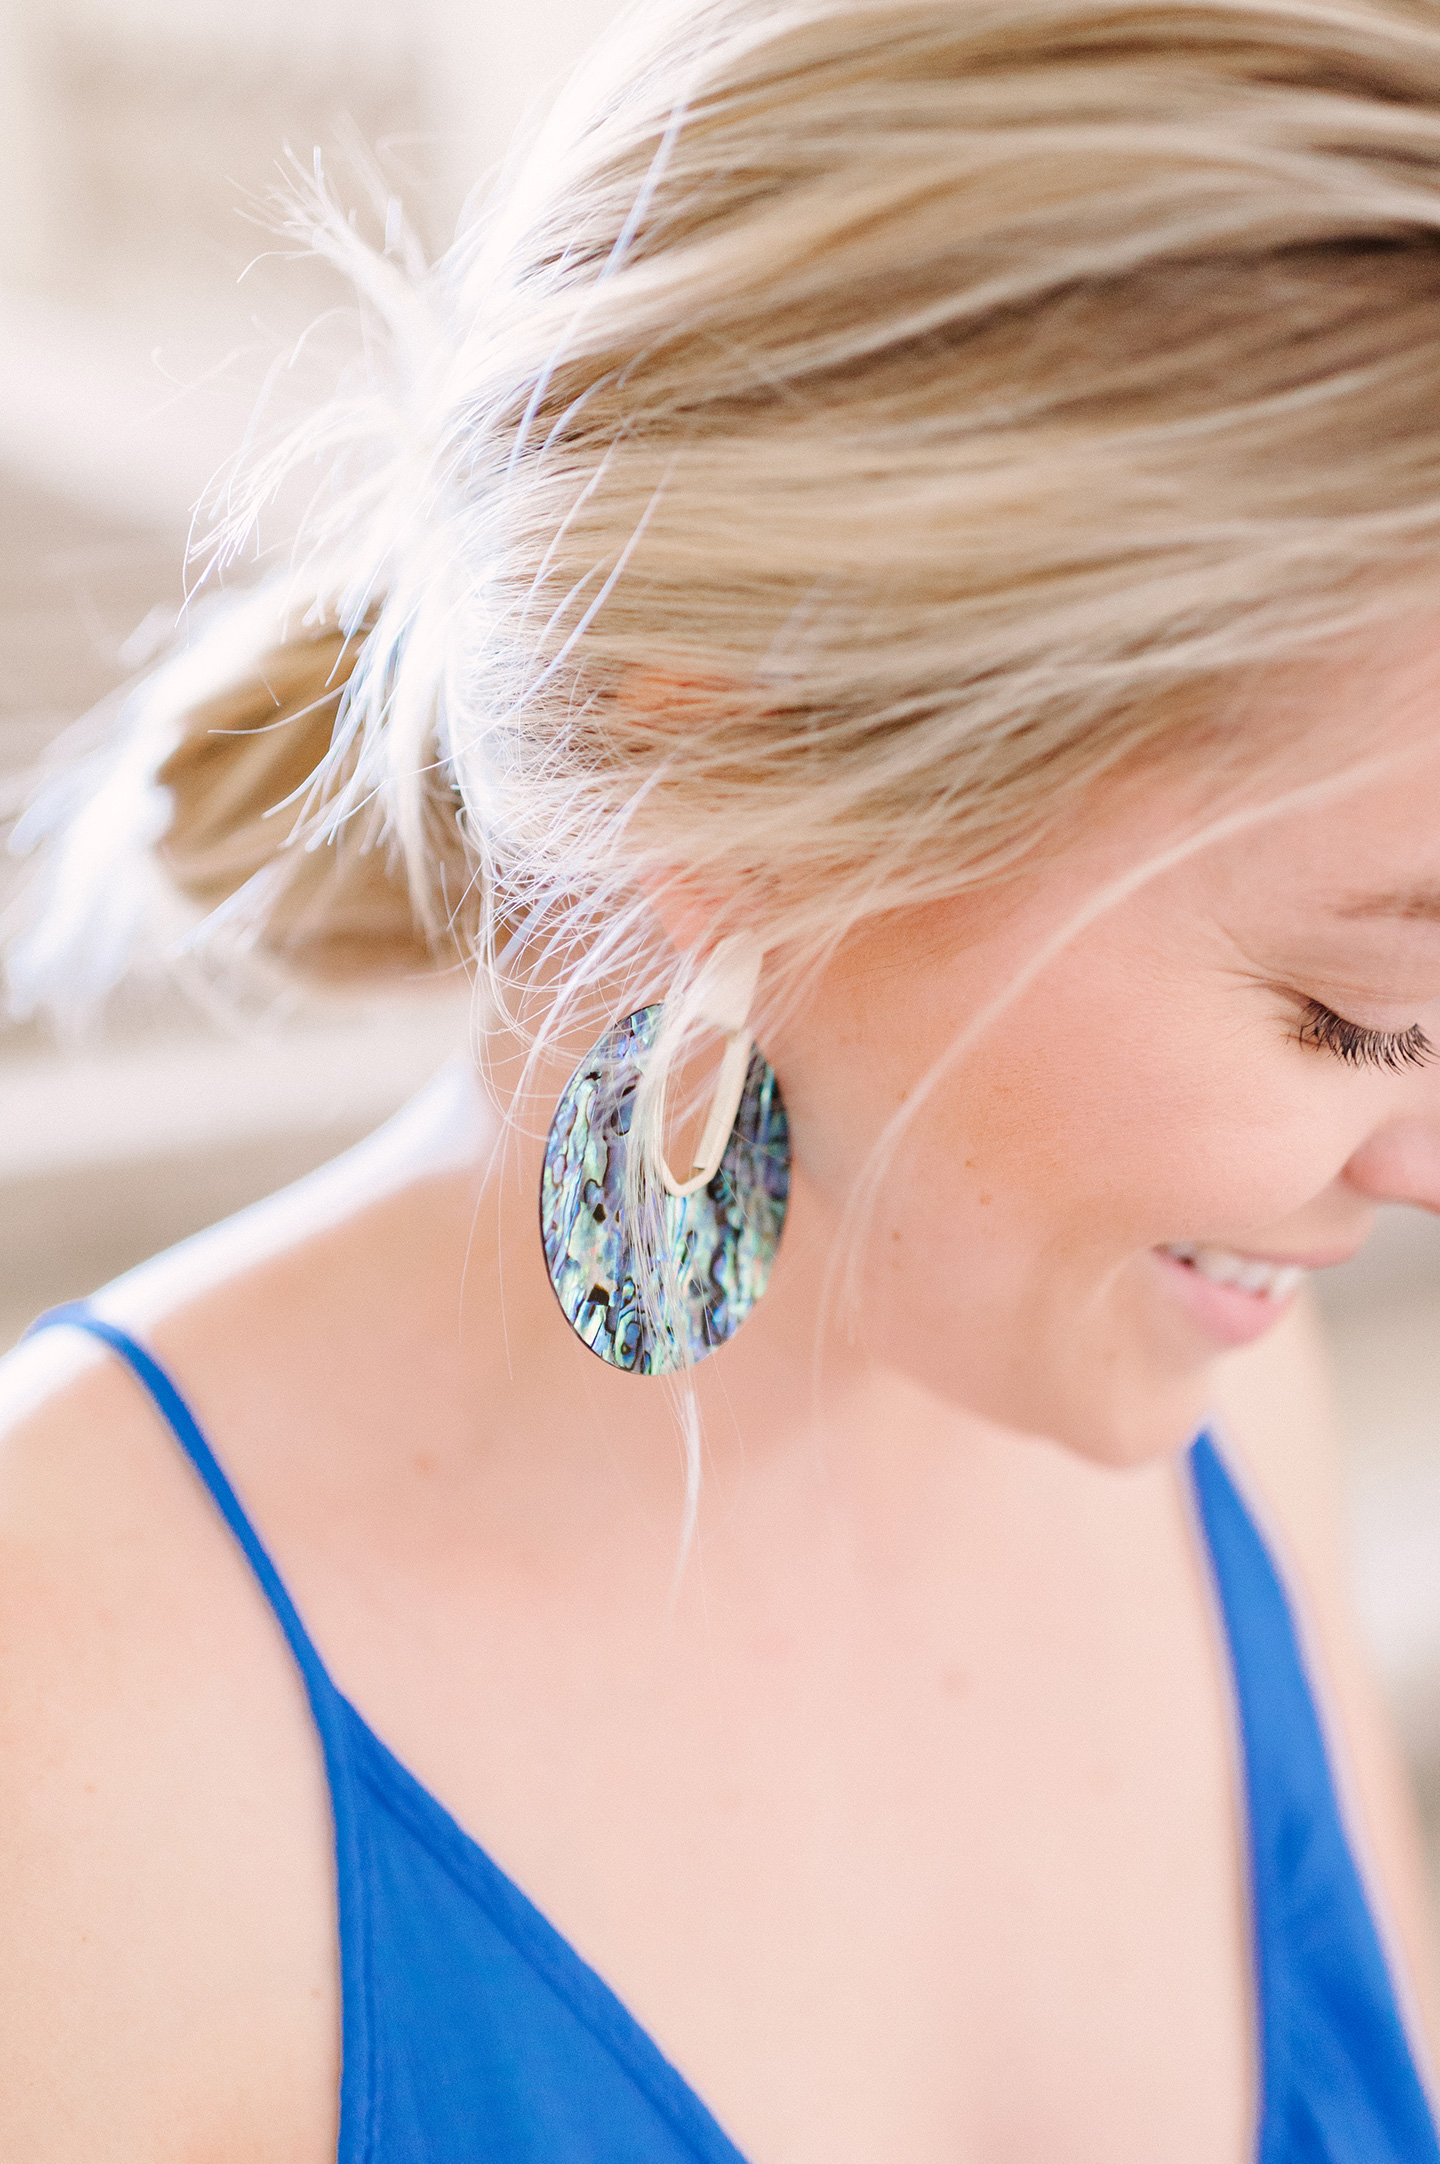 Kendra Scott Diane Earrings in Abalone Shell